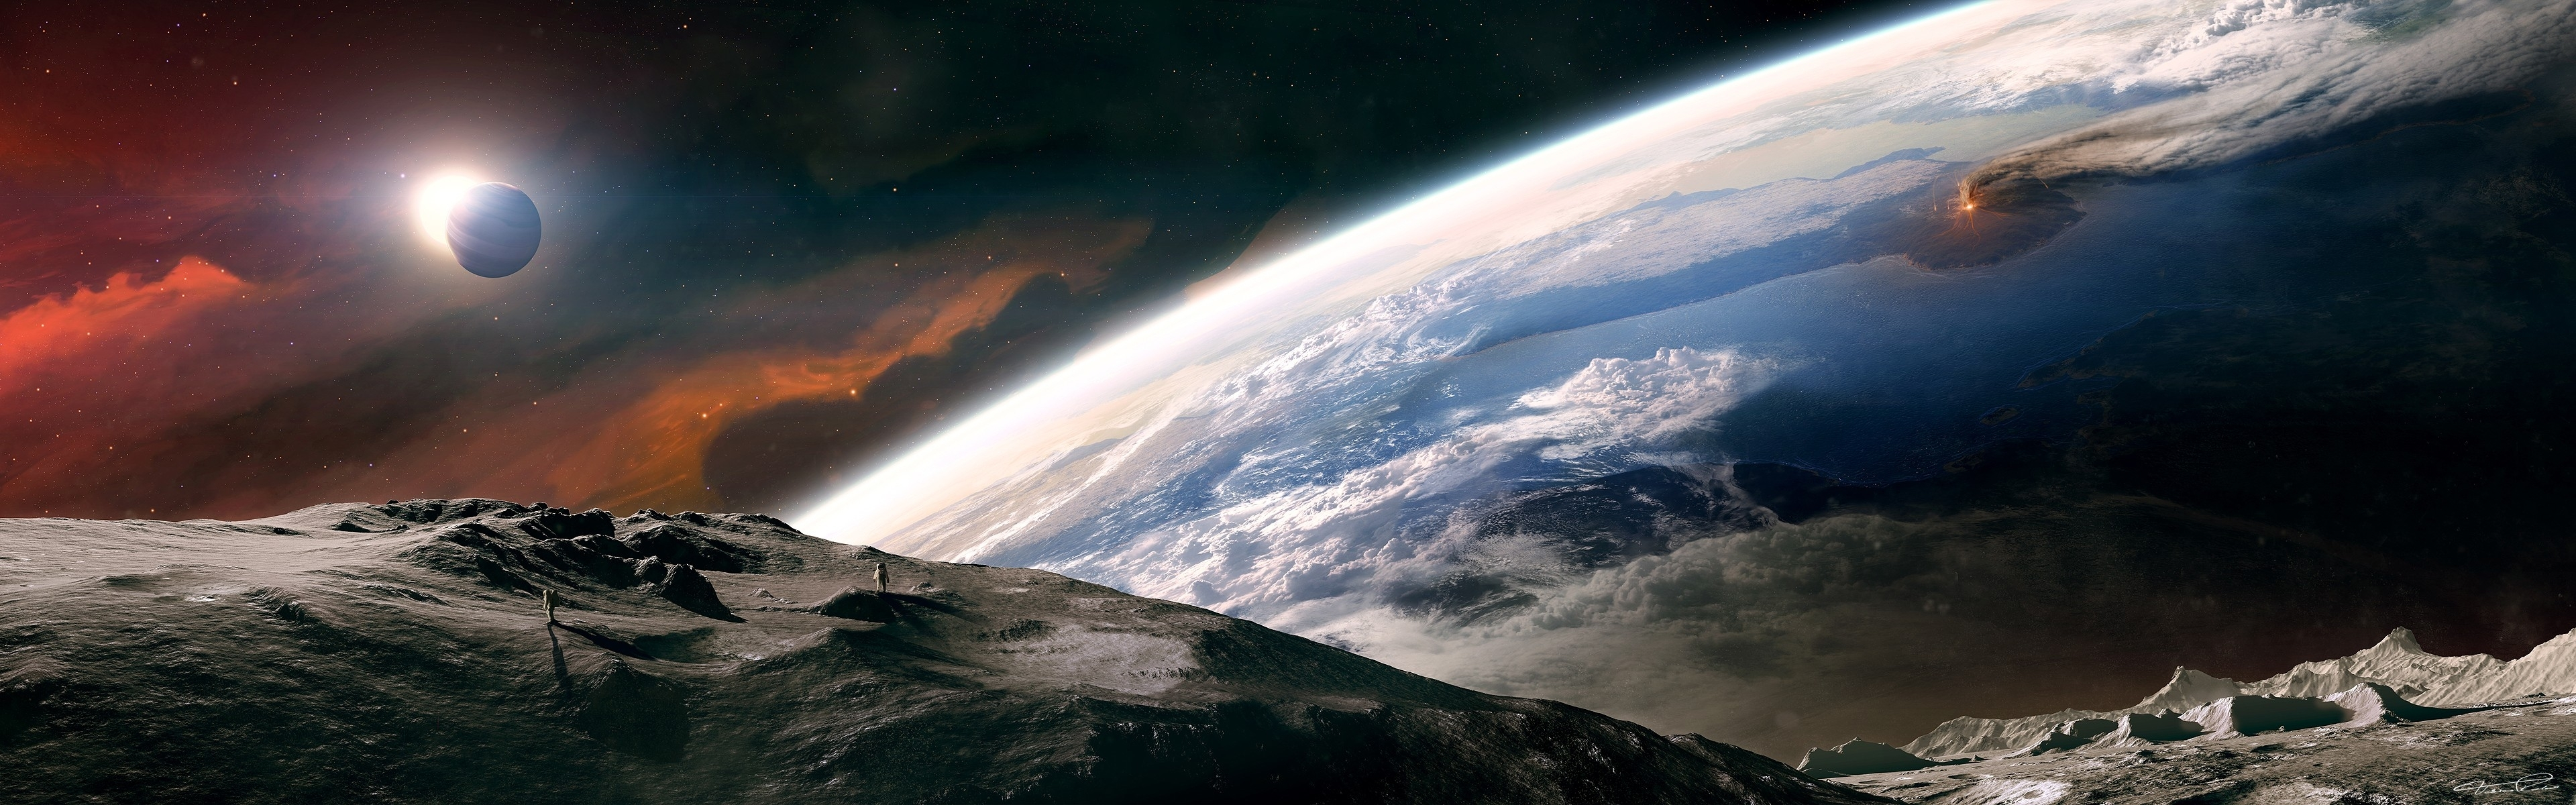 outer space moon earth tranquility dual monitor 3840x1200 wallpaper 3840x1200